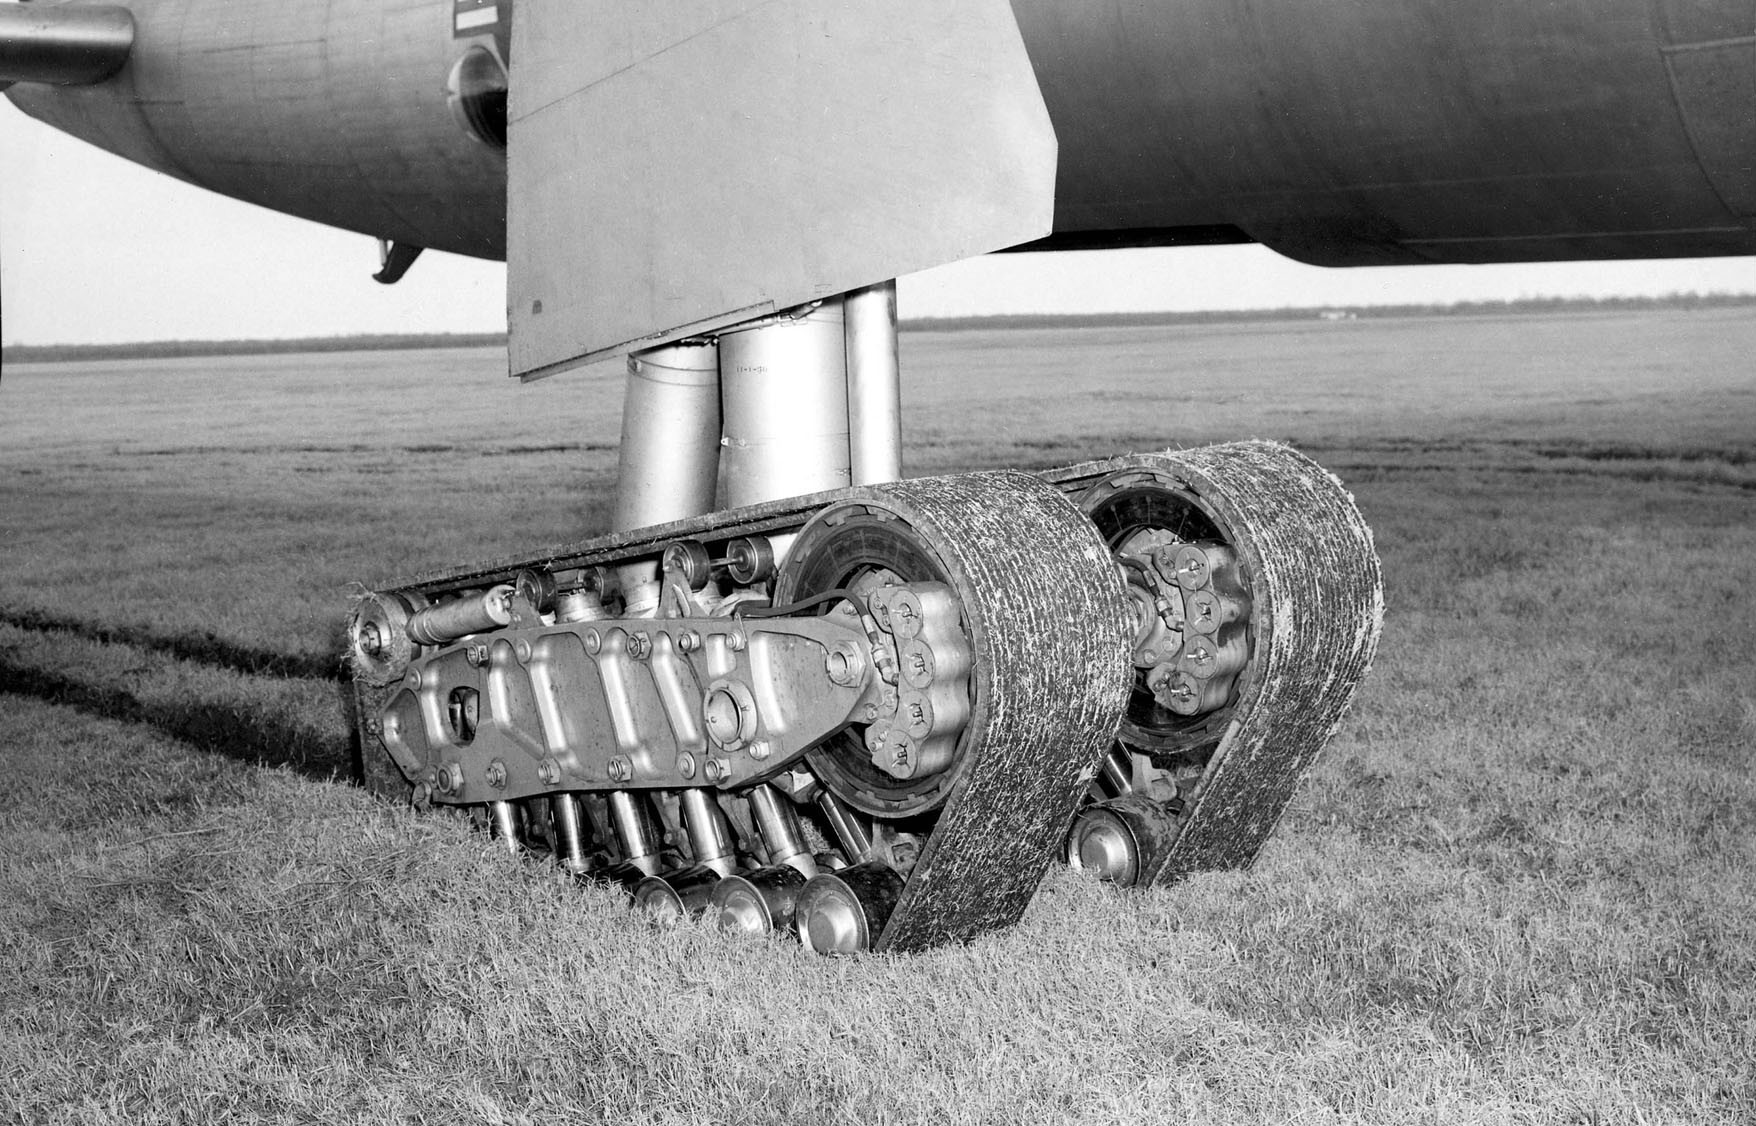 Experimental tracked gear on a B-36 Peacemaker